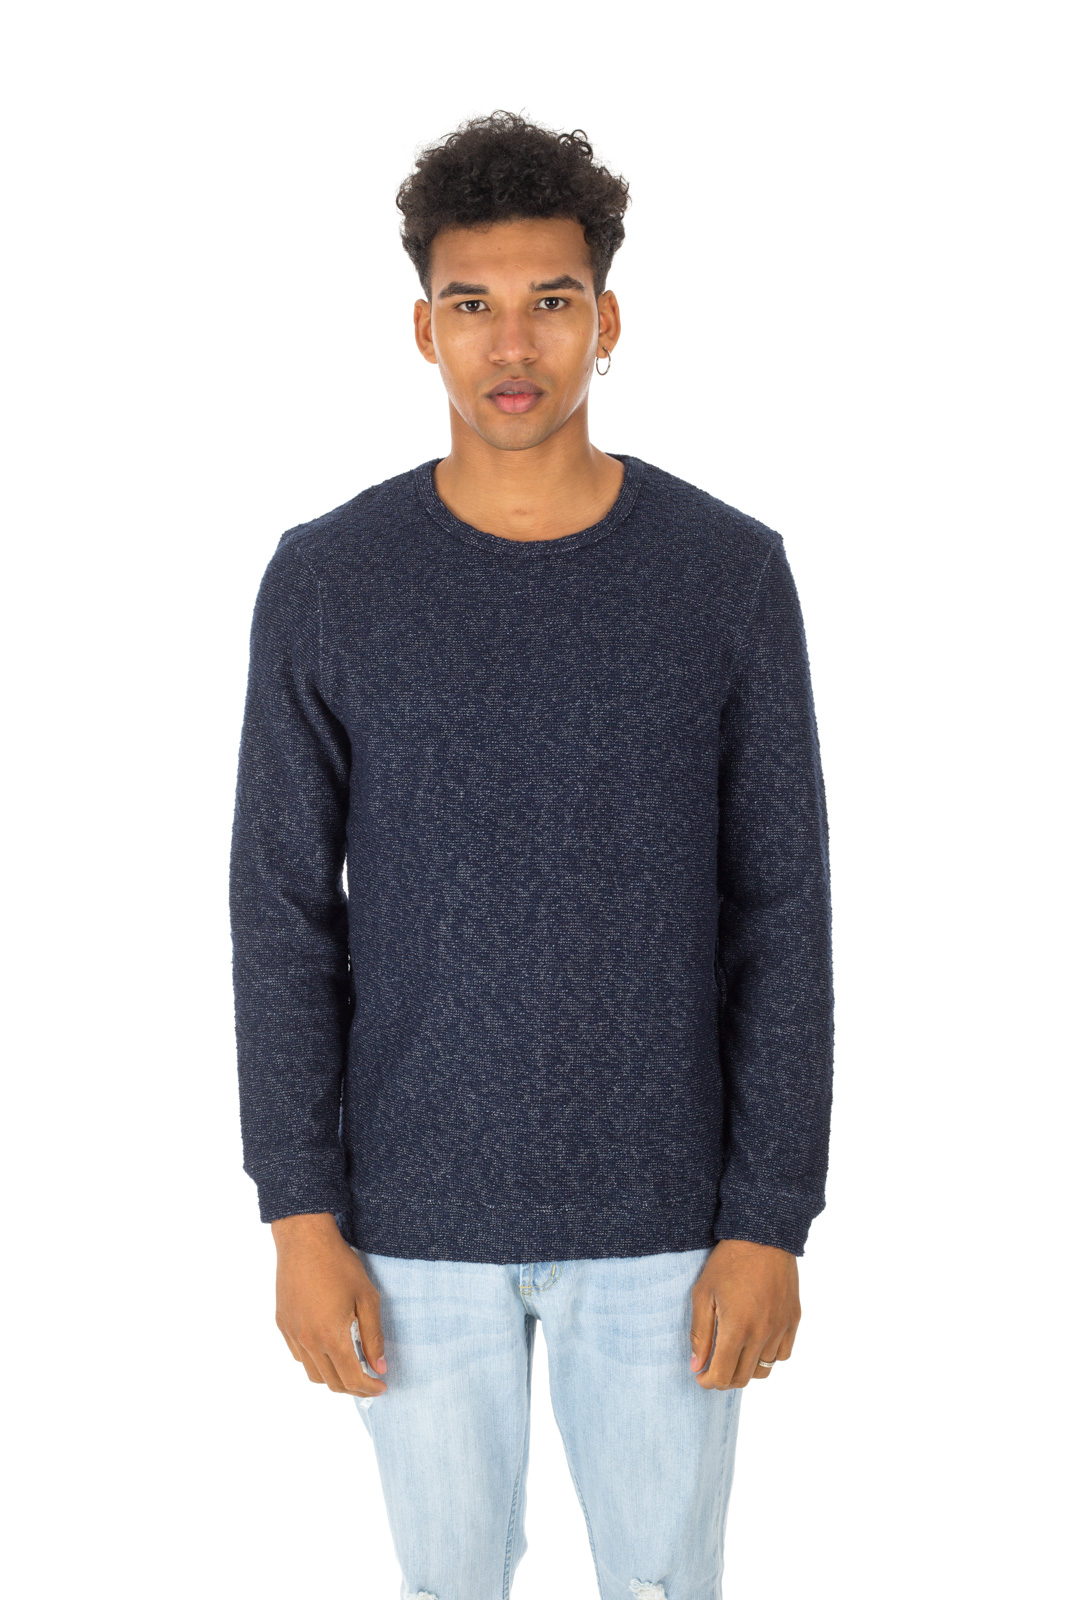 Minimum - Blue Noshiro Sweater